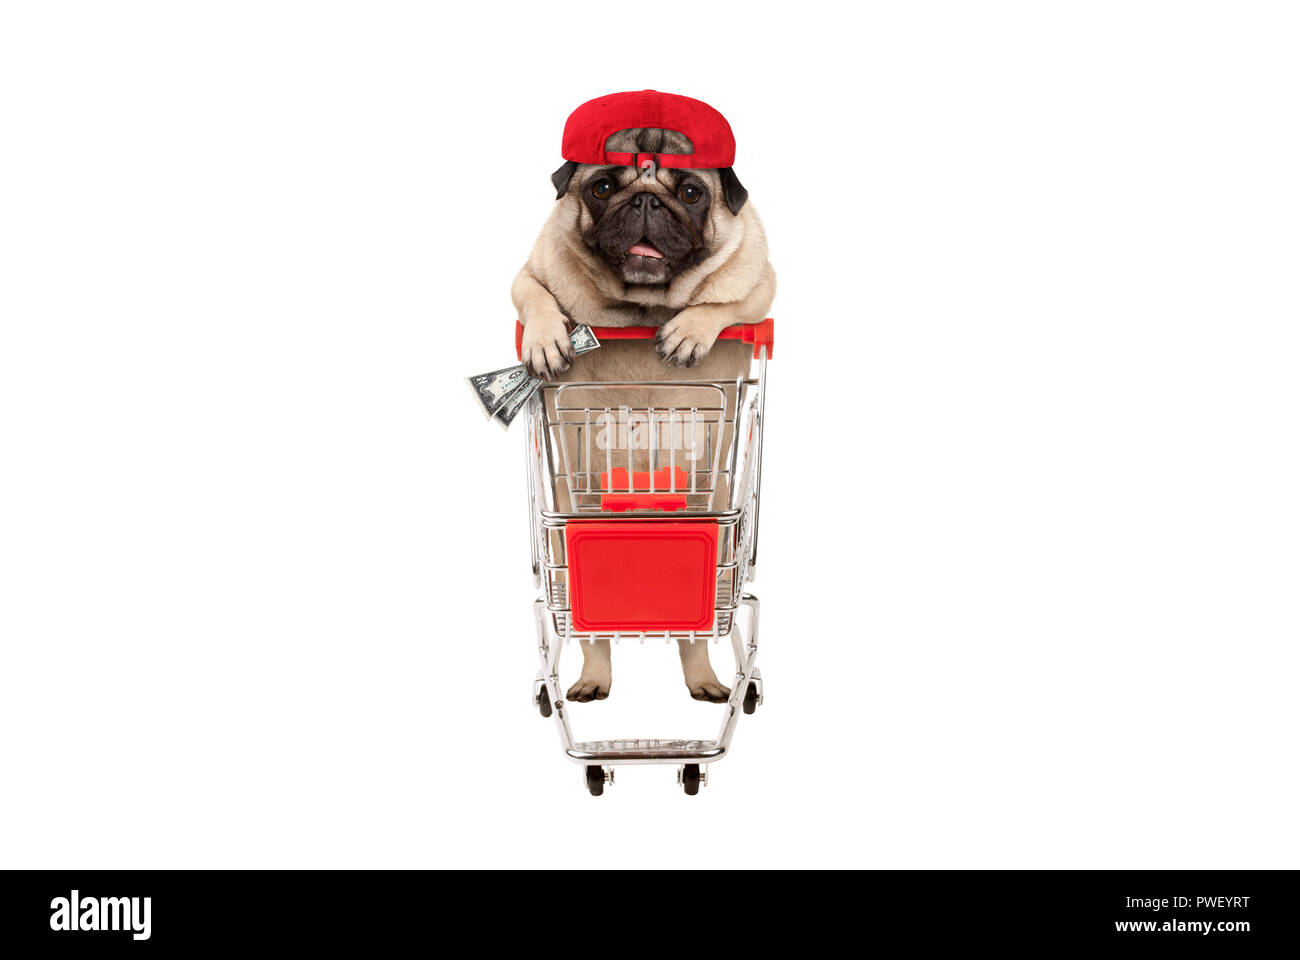 funny happy pug puppy dog with money in is hand, leaning on shopping cart. isolated on white background - Stock Image